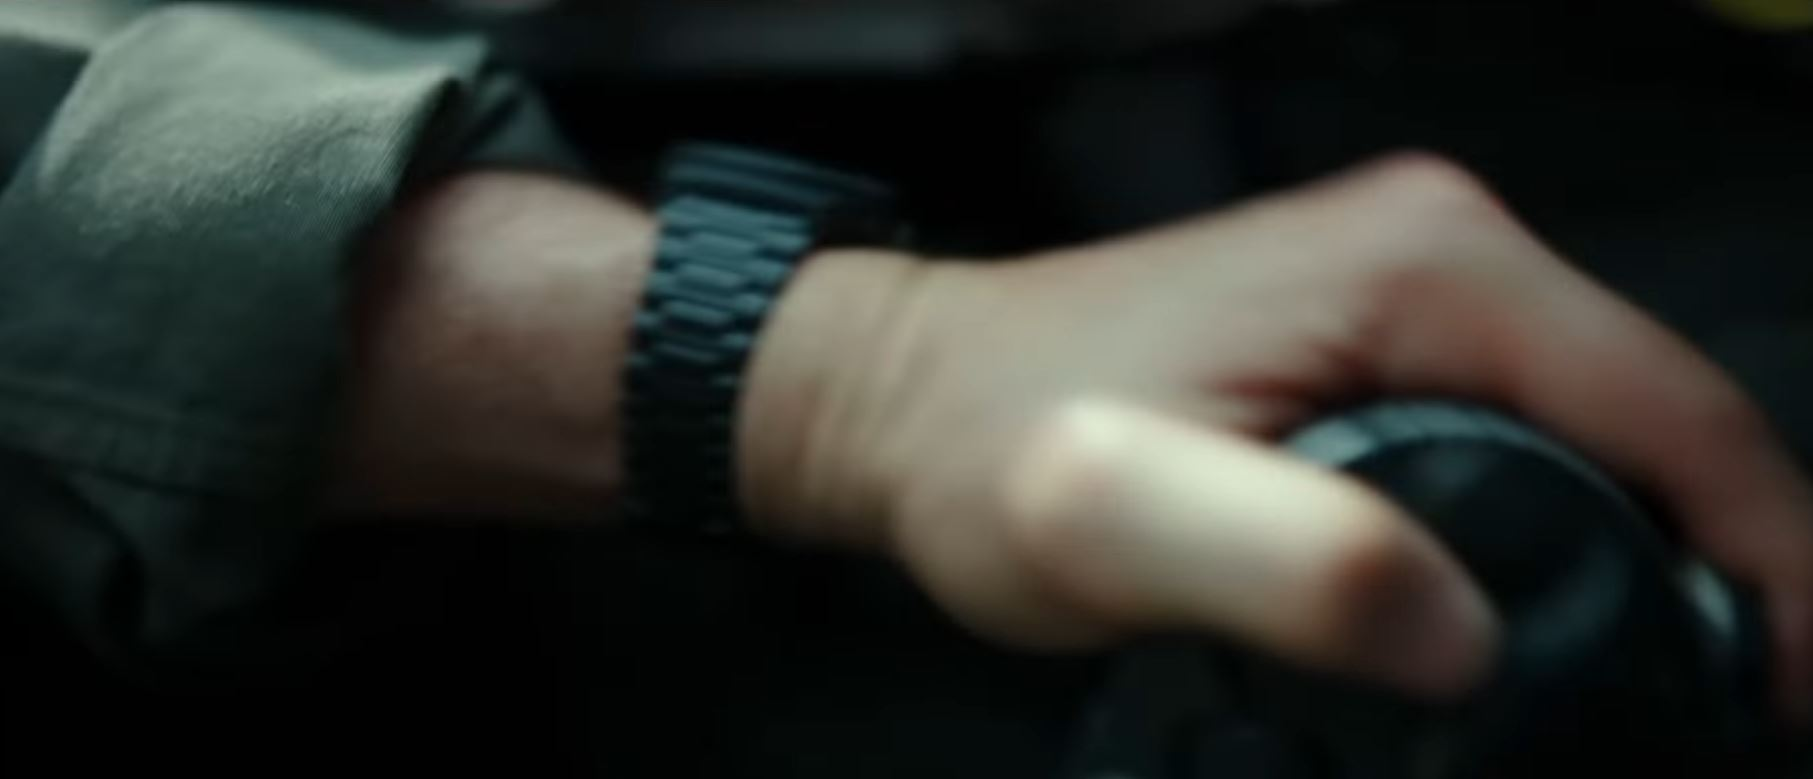 What is that watch in Top Gun: Maverick? Top-gun-maverick-return-of-porsche-design-orfina-chronograph-black-pvd-2